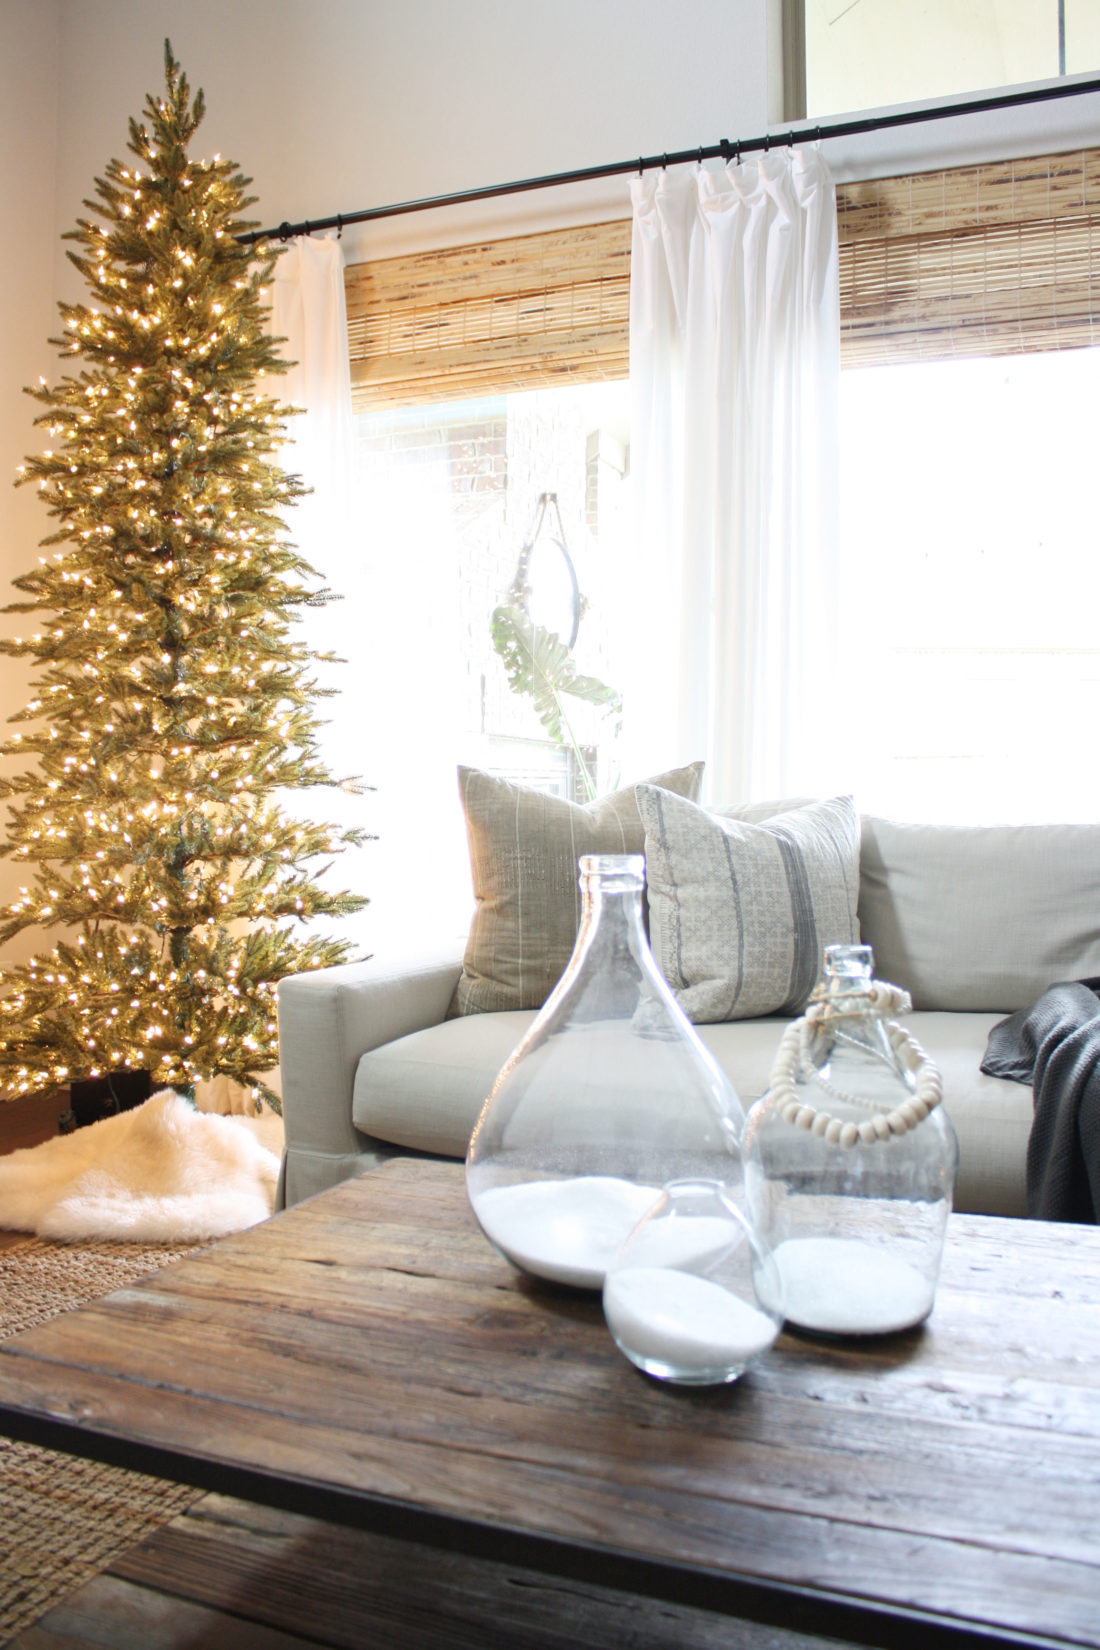 simple christmas tree without decorations - Christmas Tree Without Decorations